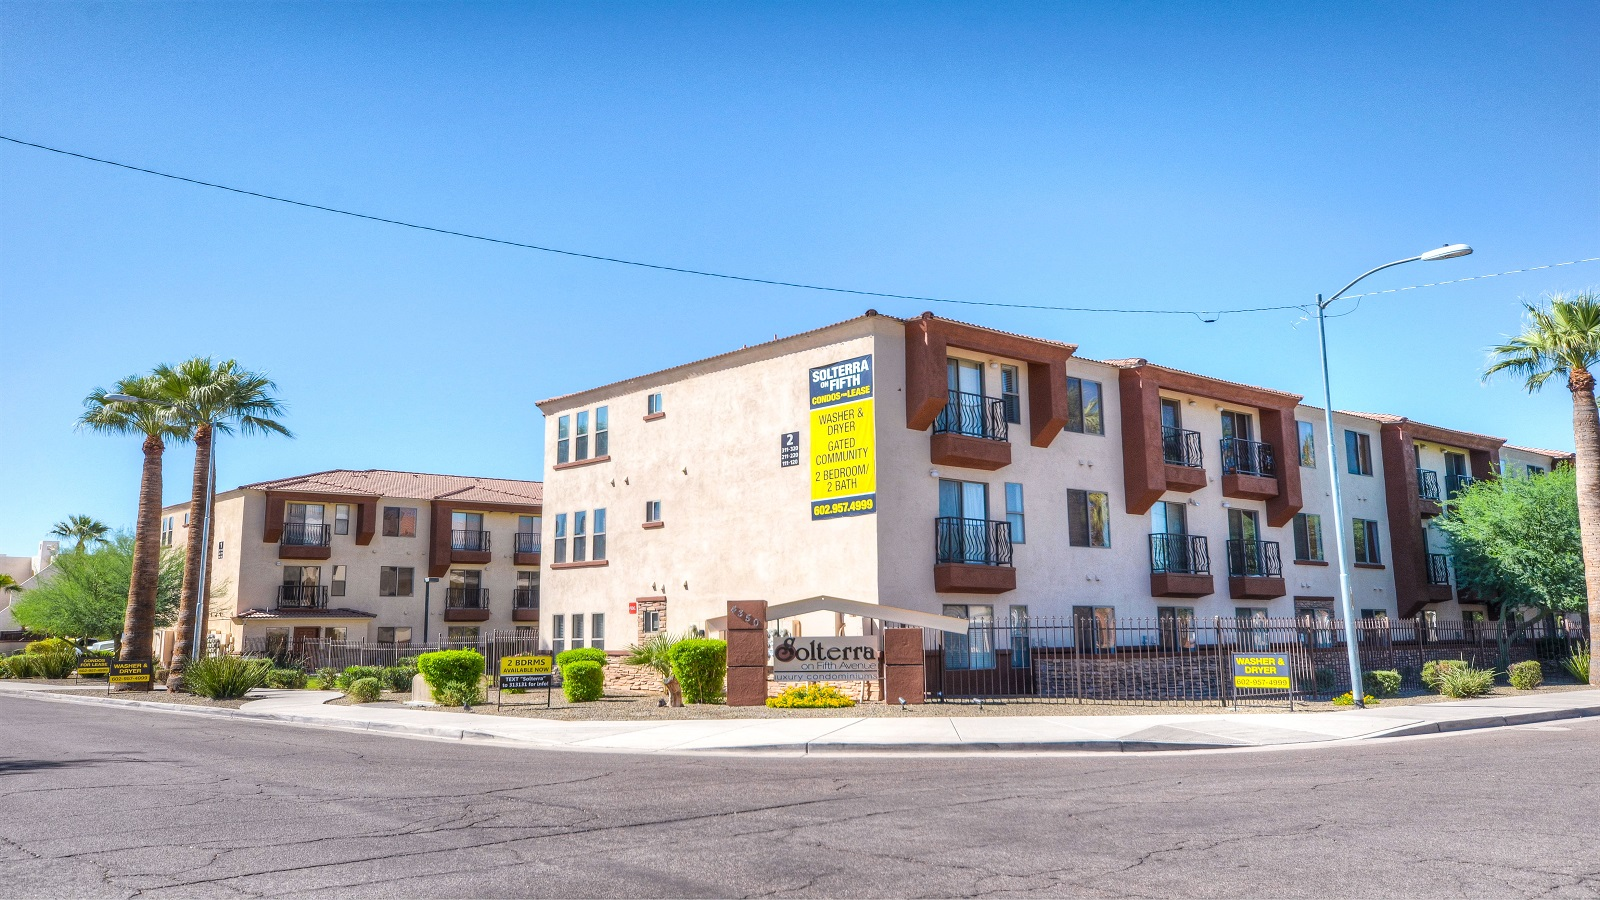 Solterra on Fifth Avenue Condominiums | 4350 North 5th Avenue, Phoenix, AZ 85013 | 41 (of 60) Units | Built: 2006 | $6,000,000 | $146,341/Unit | $173.98/SF